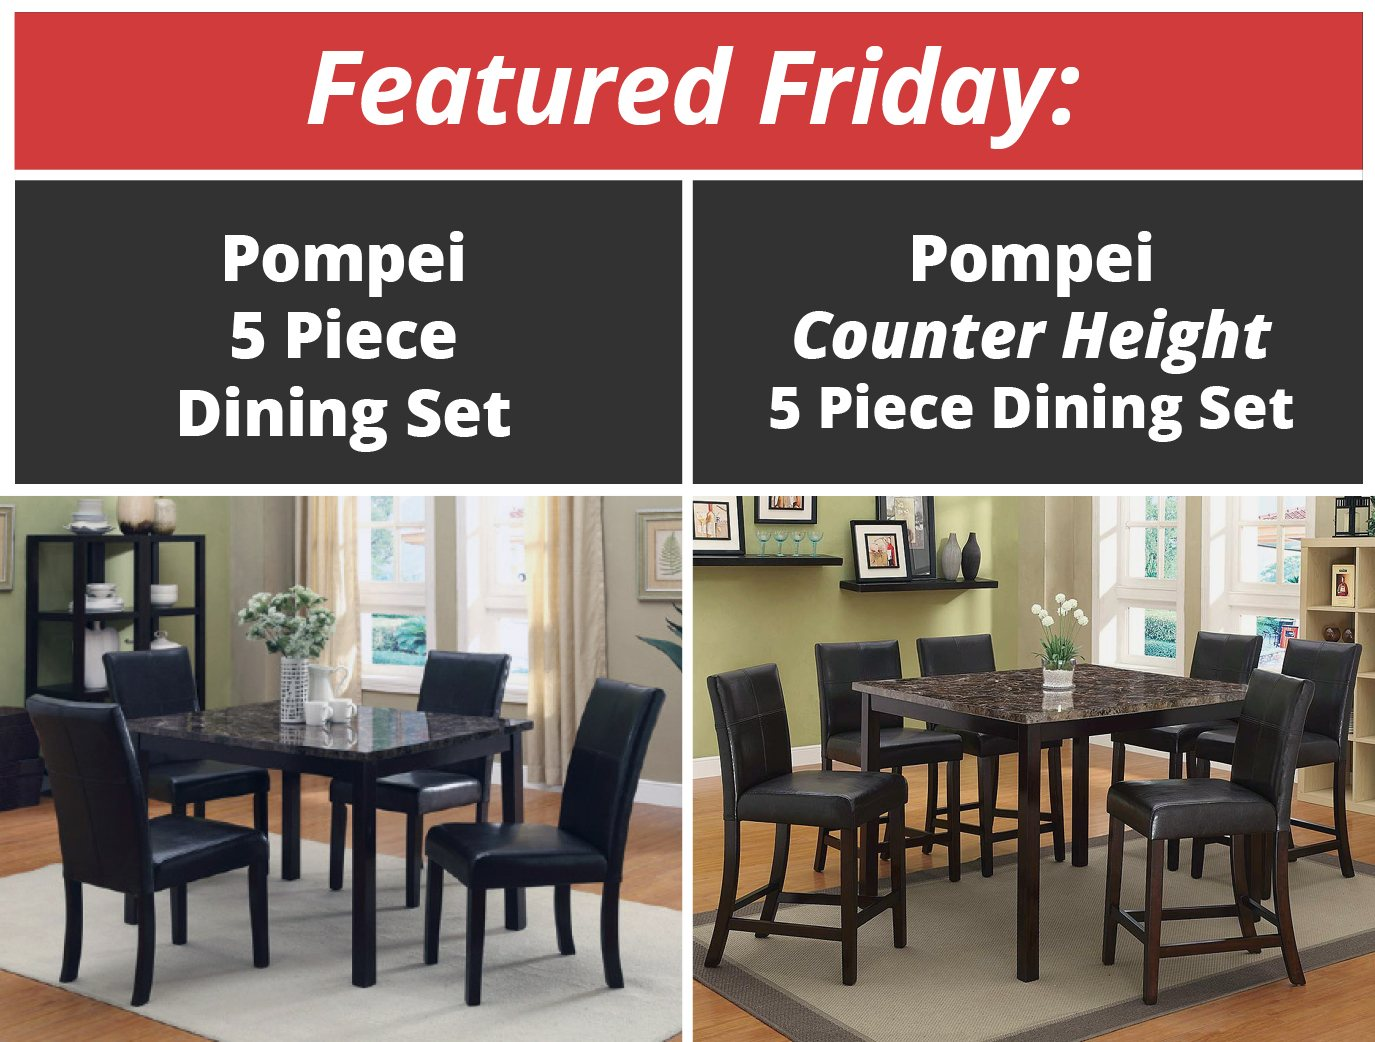 Featured Friday: Pompei Dining Sets